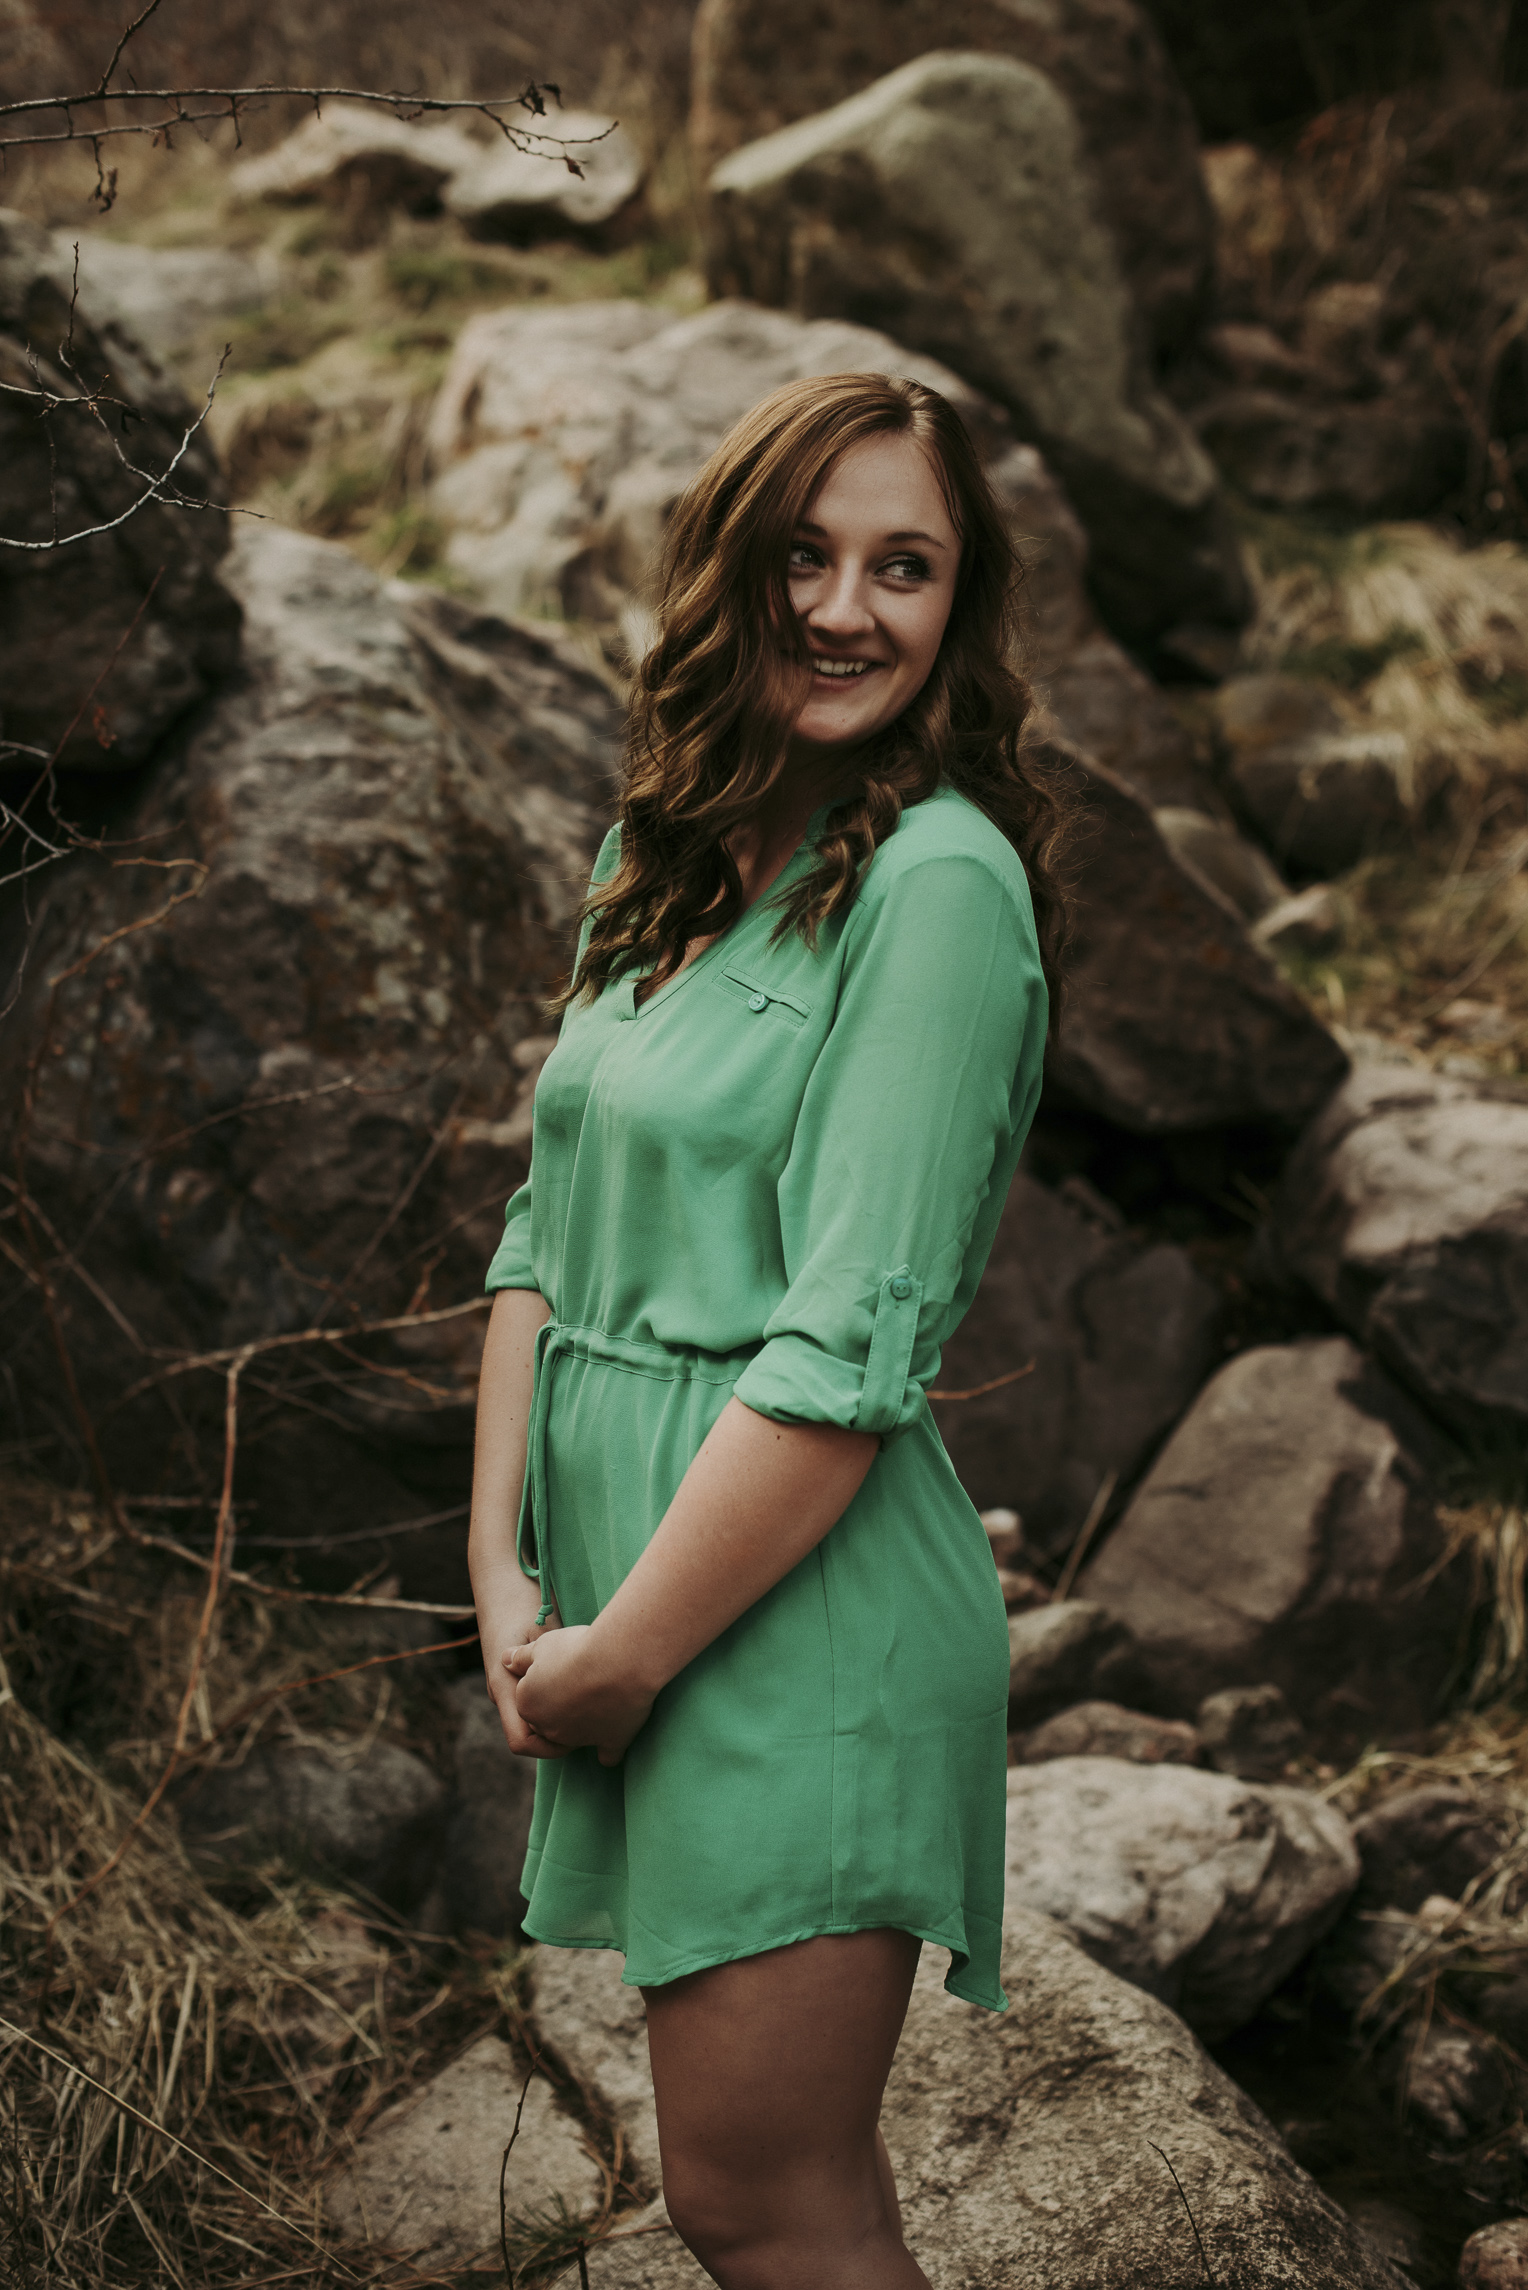 180416CHAI RYAN - COLORADO PHOTOGRAPHER - DEBI RAE PHOTOGRAPHY-8827.jpg